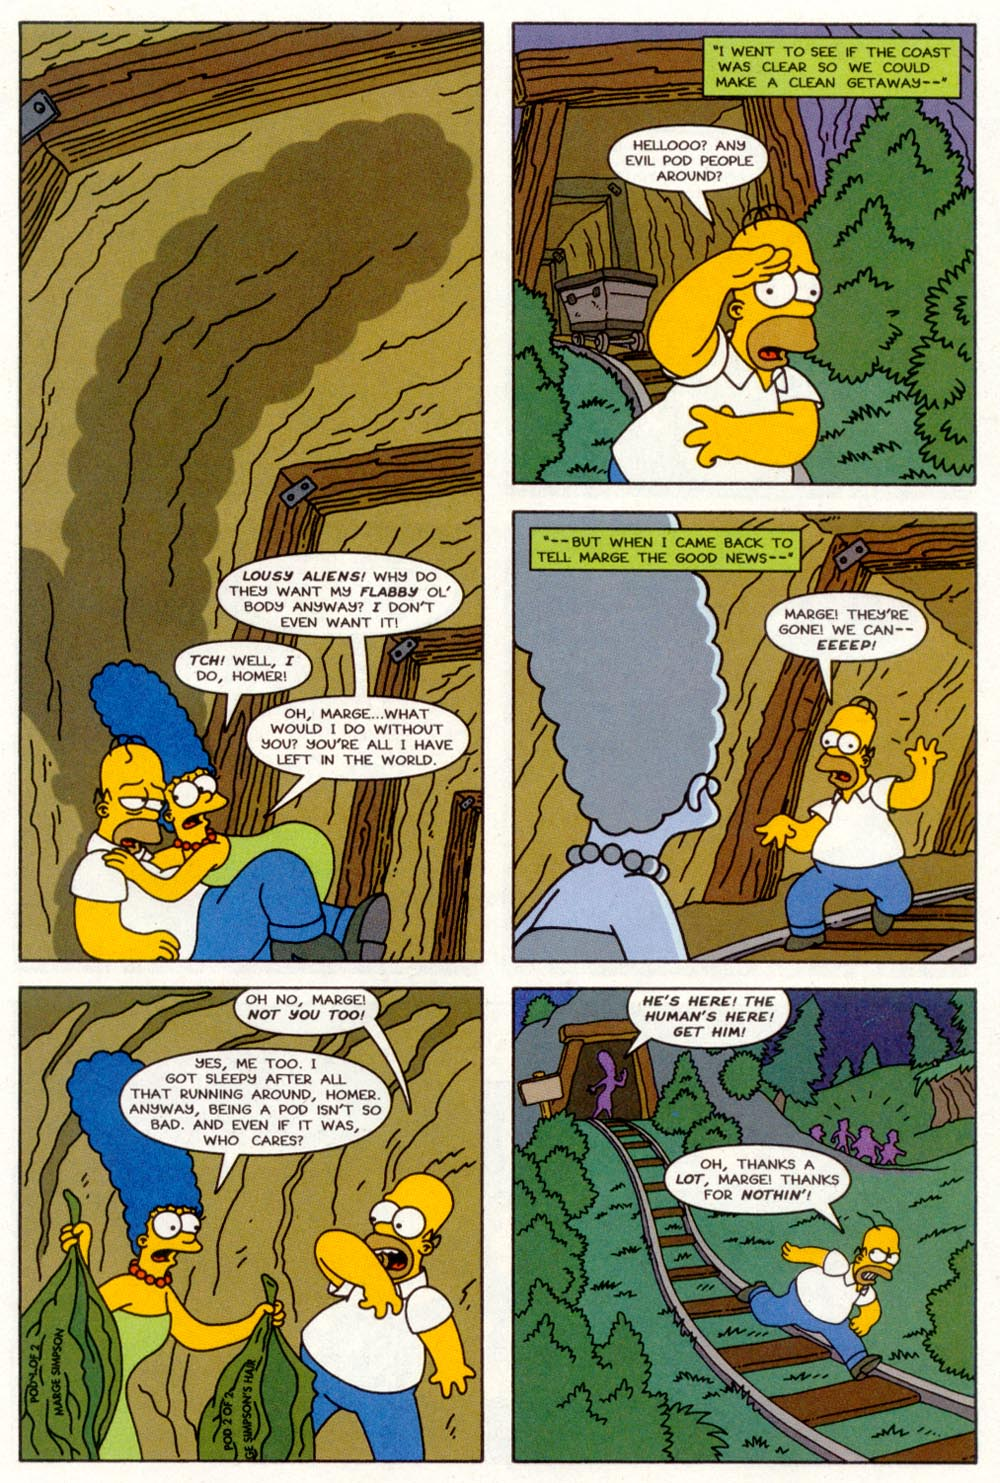 Read online Treehouse of Horror comic -  Issue #3 - 20